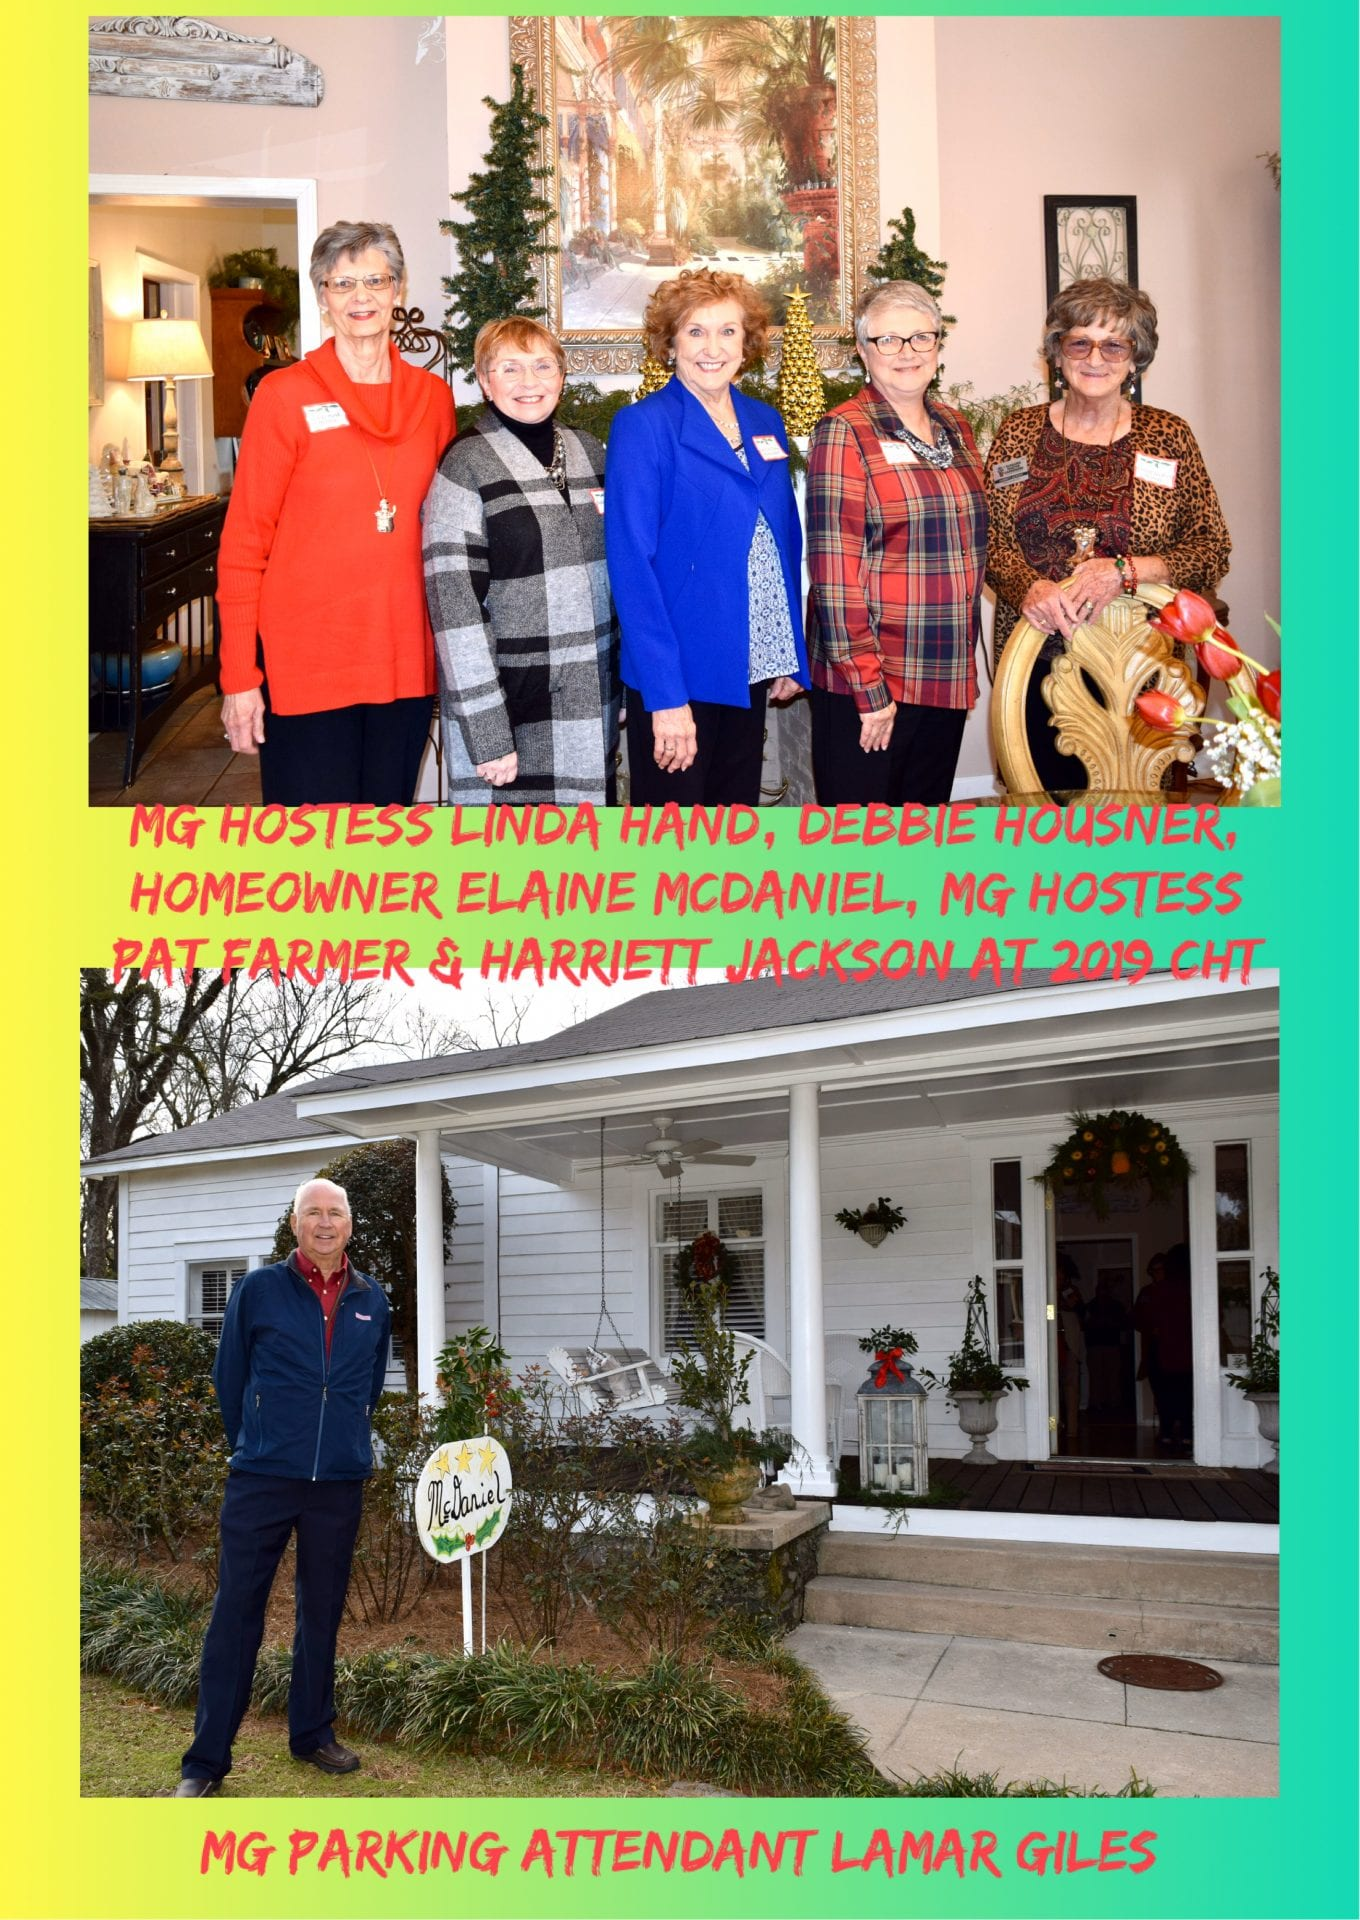 MG hostesses and parking attendants at McDaniels Home 2019 Christmas Home Tour